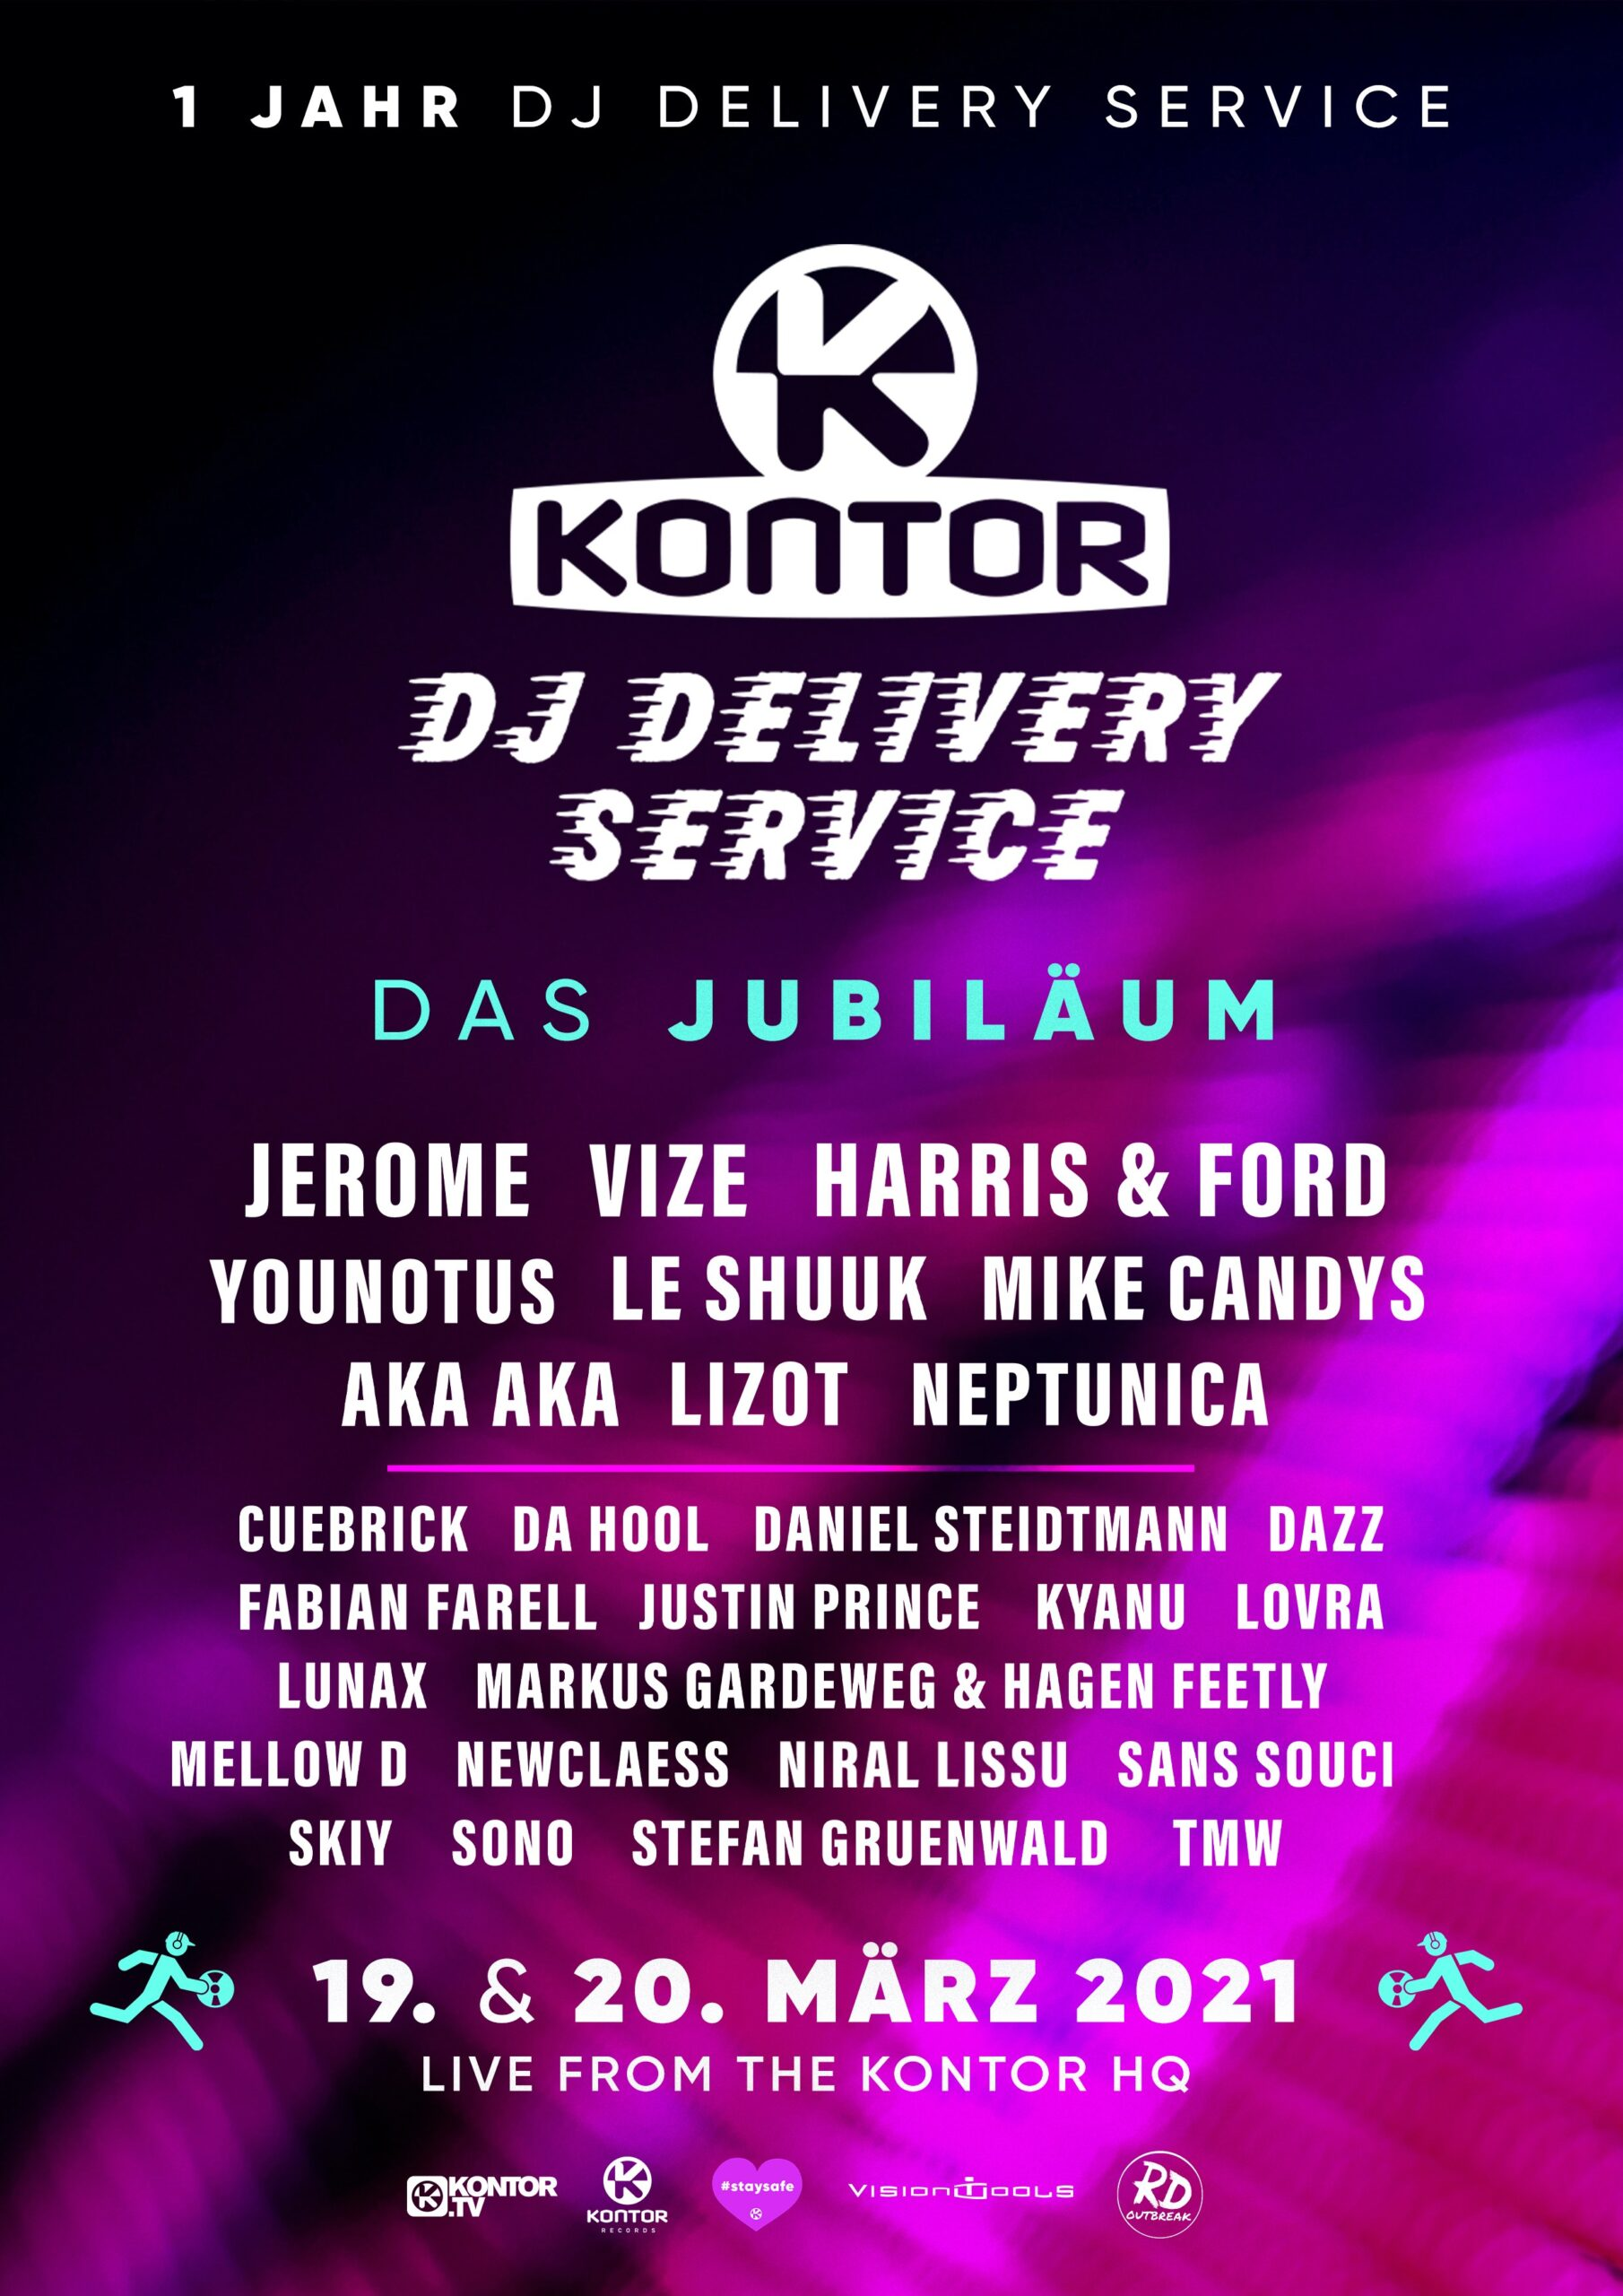 One Year On: Kontor DJ Delivery Service